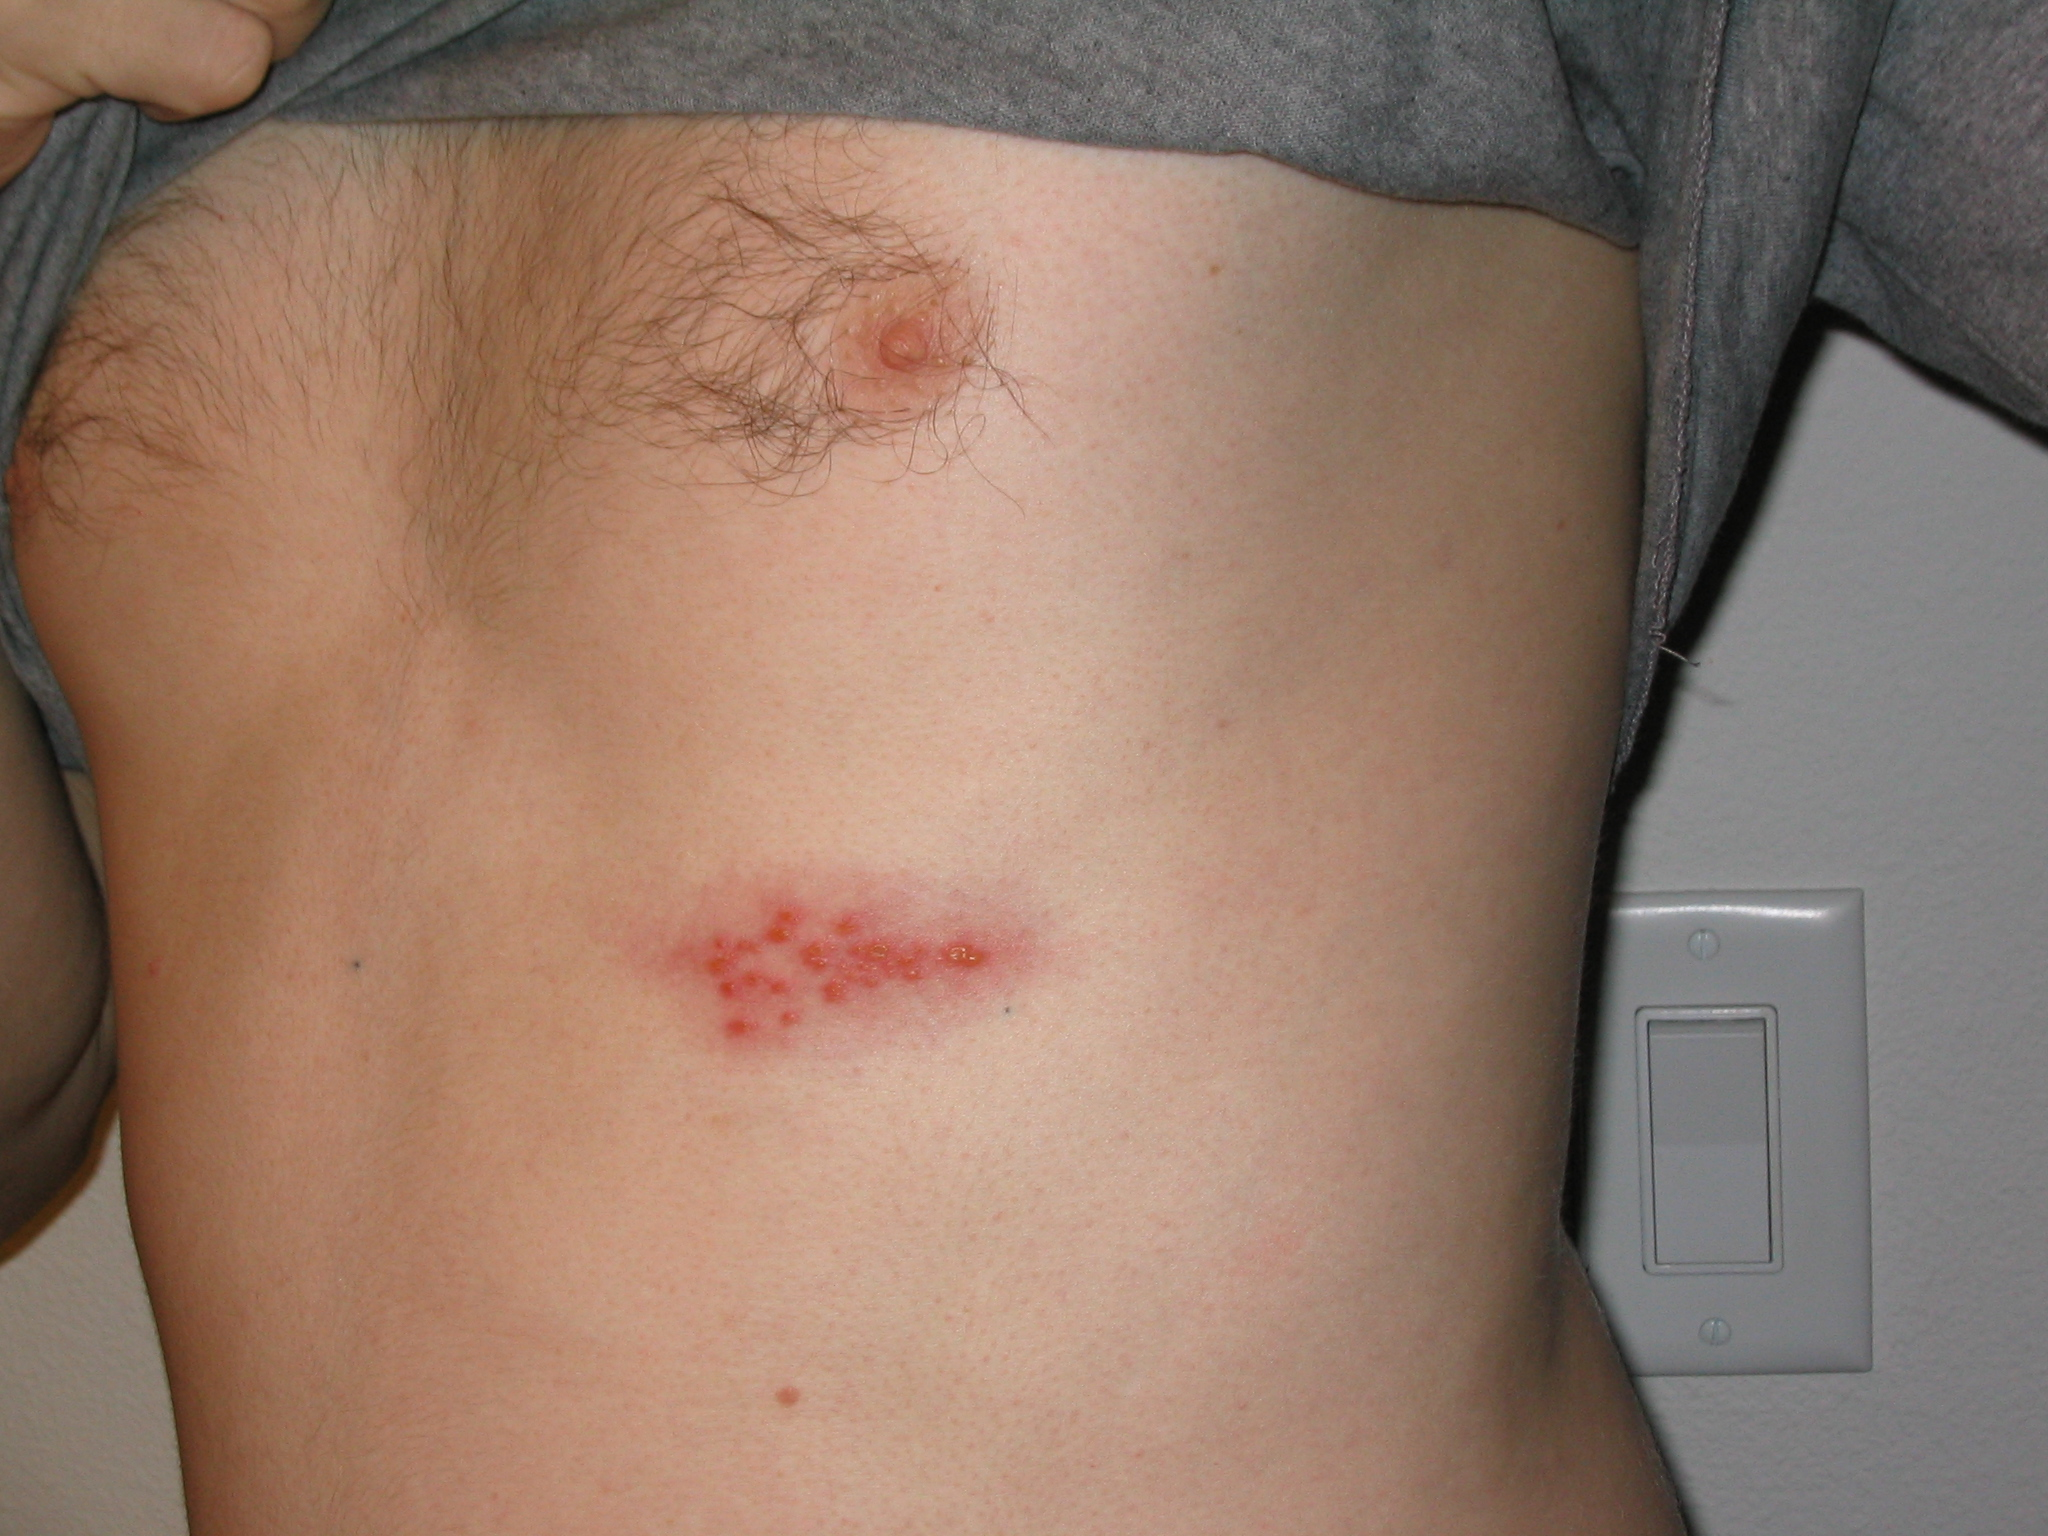 http://upload.wikimedia.org/wikipedia/commons/0/03/Shingles_on_the_chest.jpg